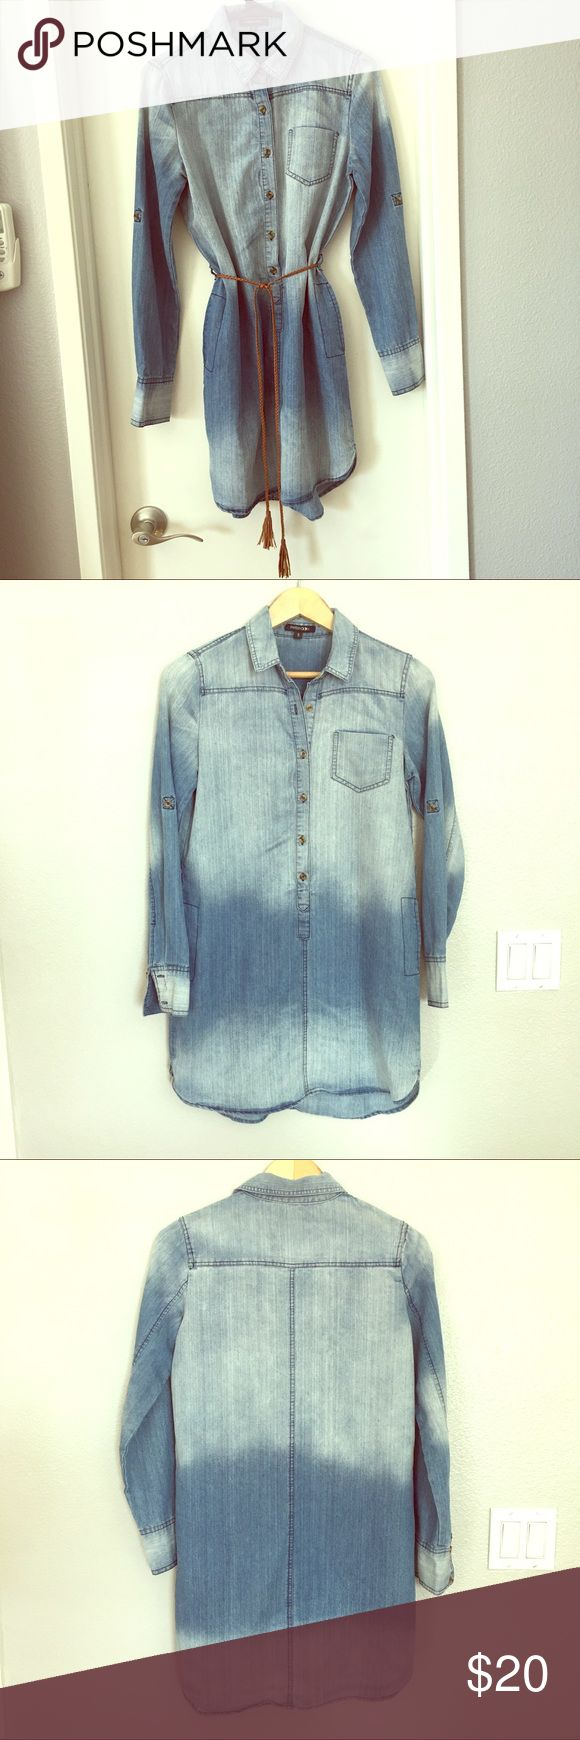 Long Sleeve Denim Dress  with Fringed Tassel Belt Can be worn with or without belt.  Tab to wear sleeves rolled up or down.  Lightweight, soft denim.  Excellent condition.  Smoke-free.  Pet-free. Paper Moon Dresses Long Sleeve